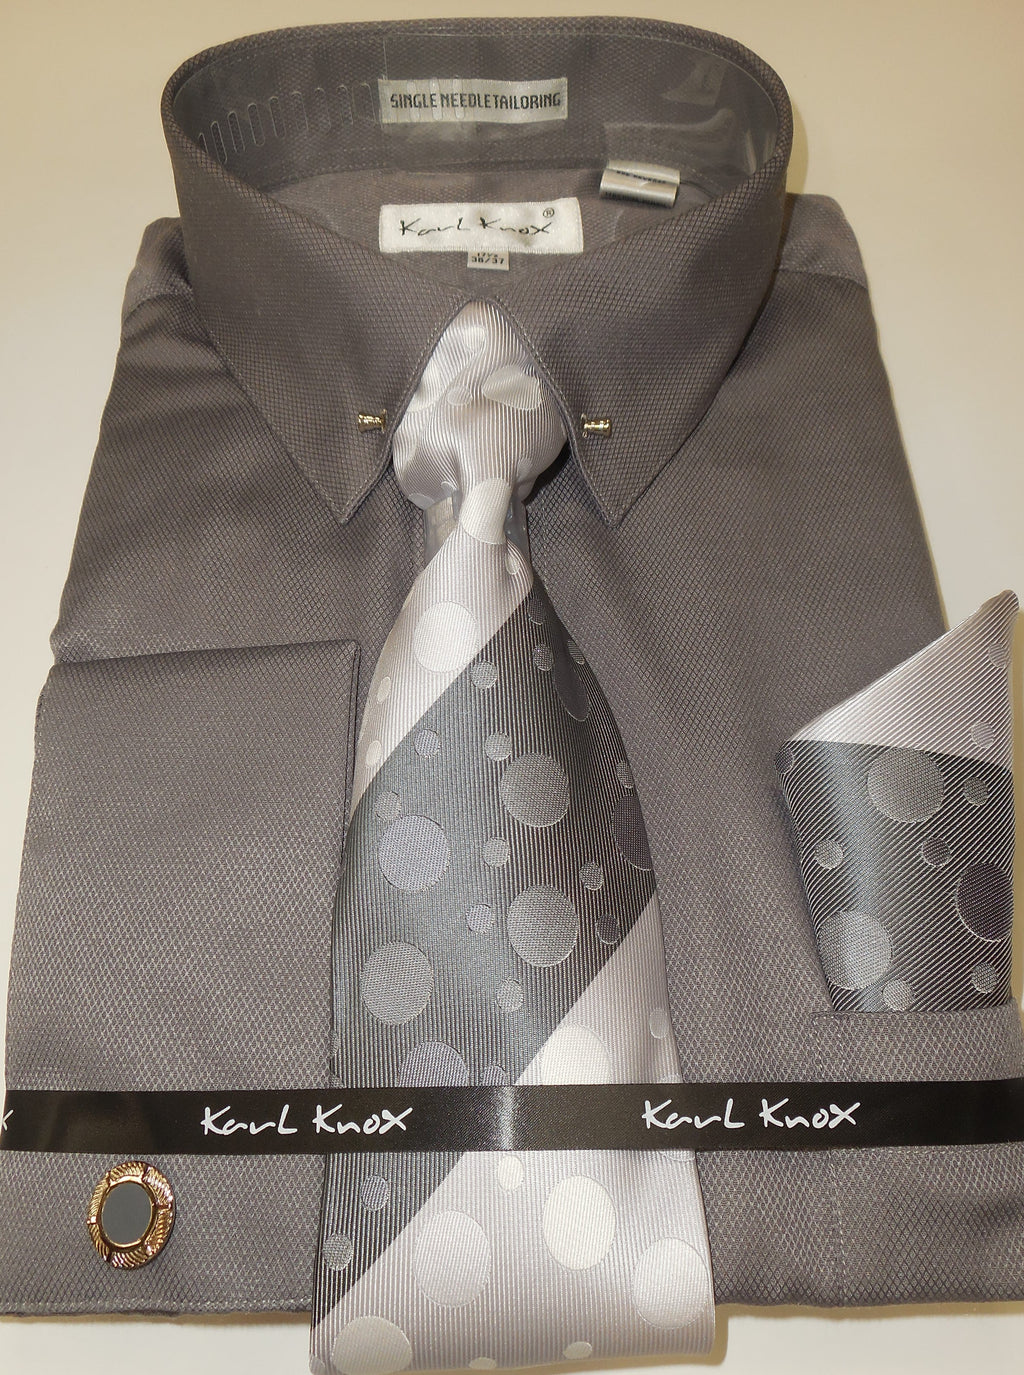 Mens Charcoal Gray Textured Pointed Collar Bar F/C Dress Shirt Karl Knox 4409 S